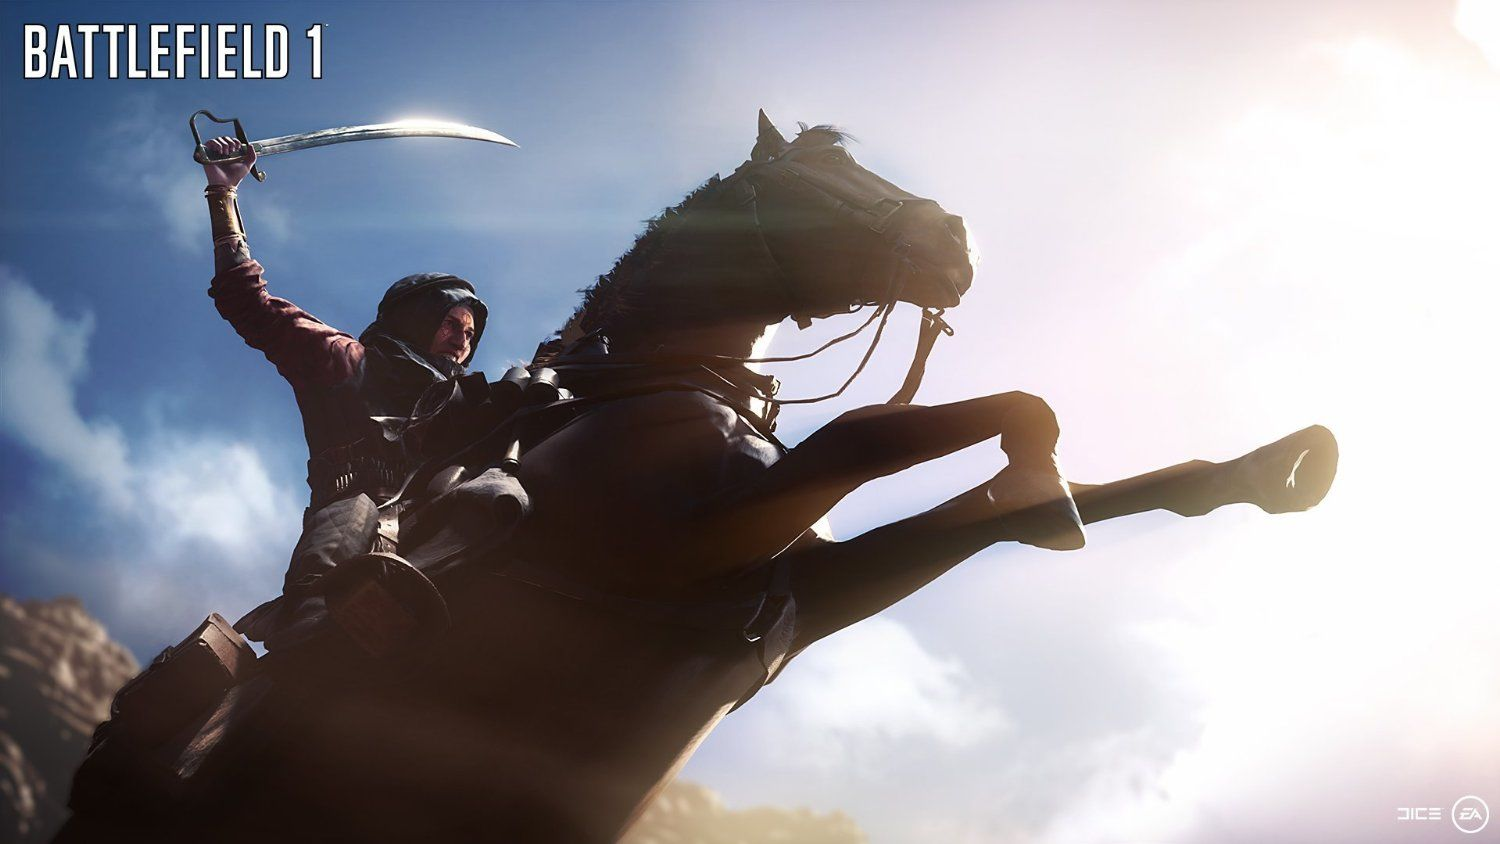 battlefield 1 screenshot 4 Battlefield 1 Trailer Drops Alongside Open Beta Start Dates